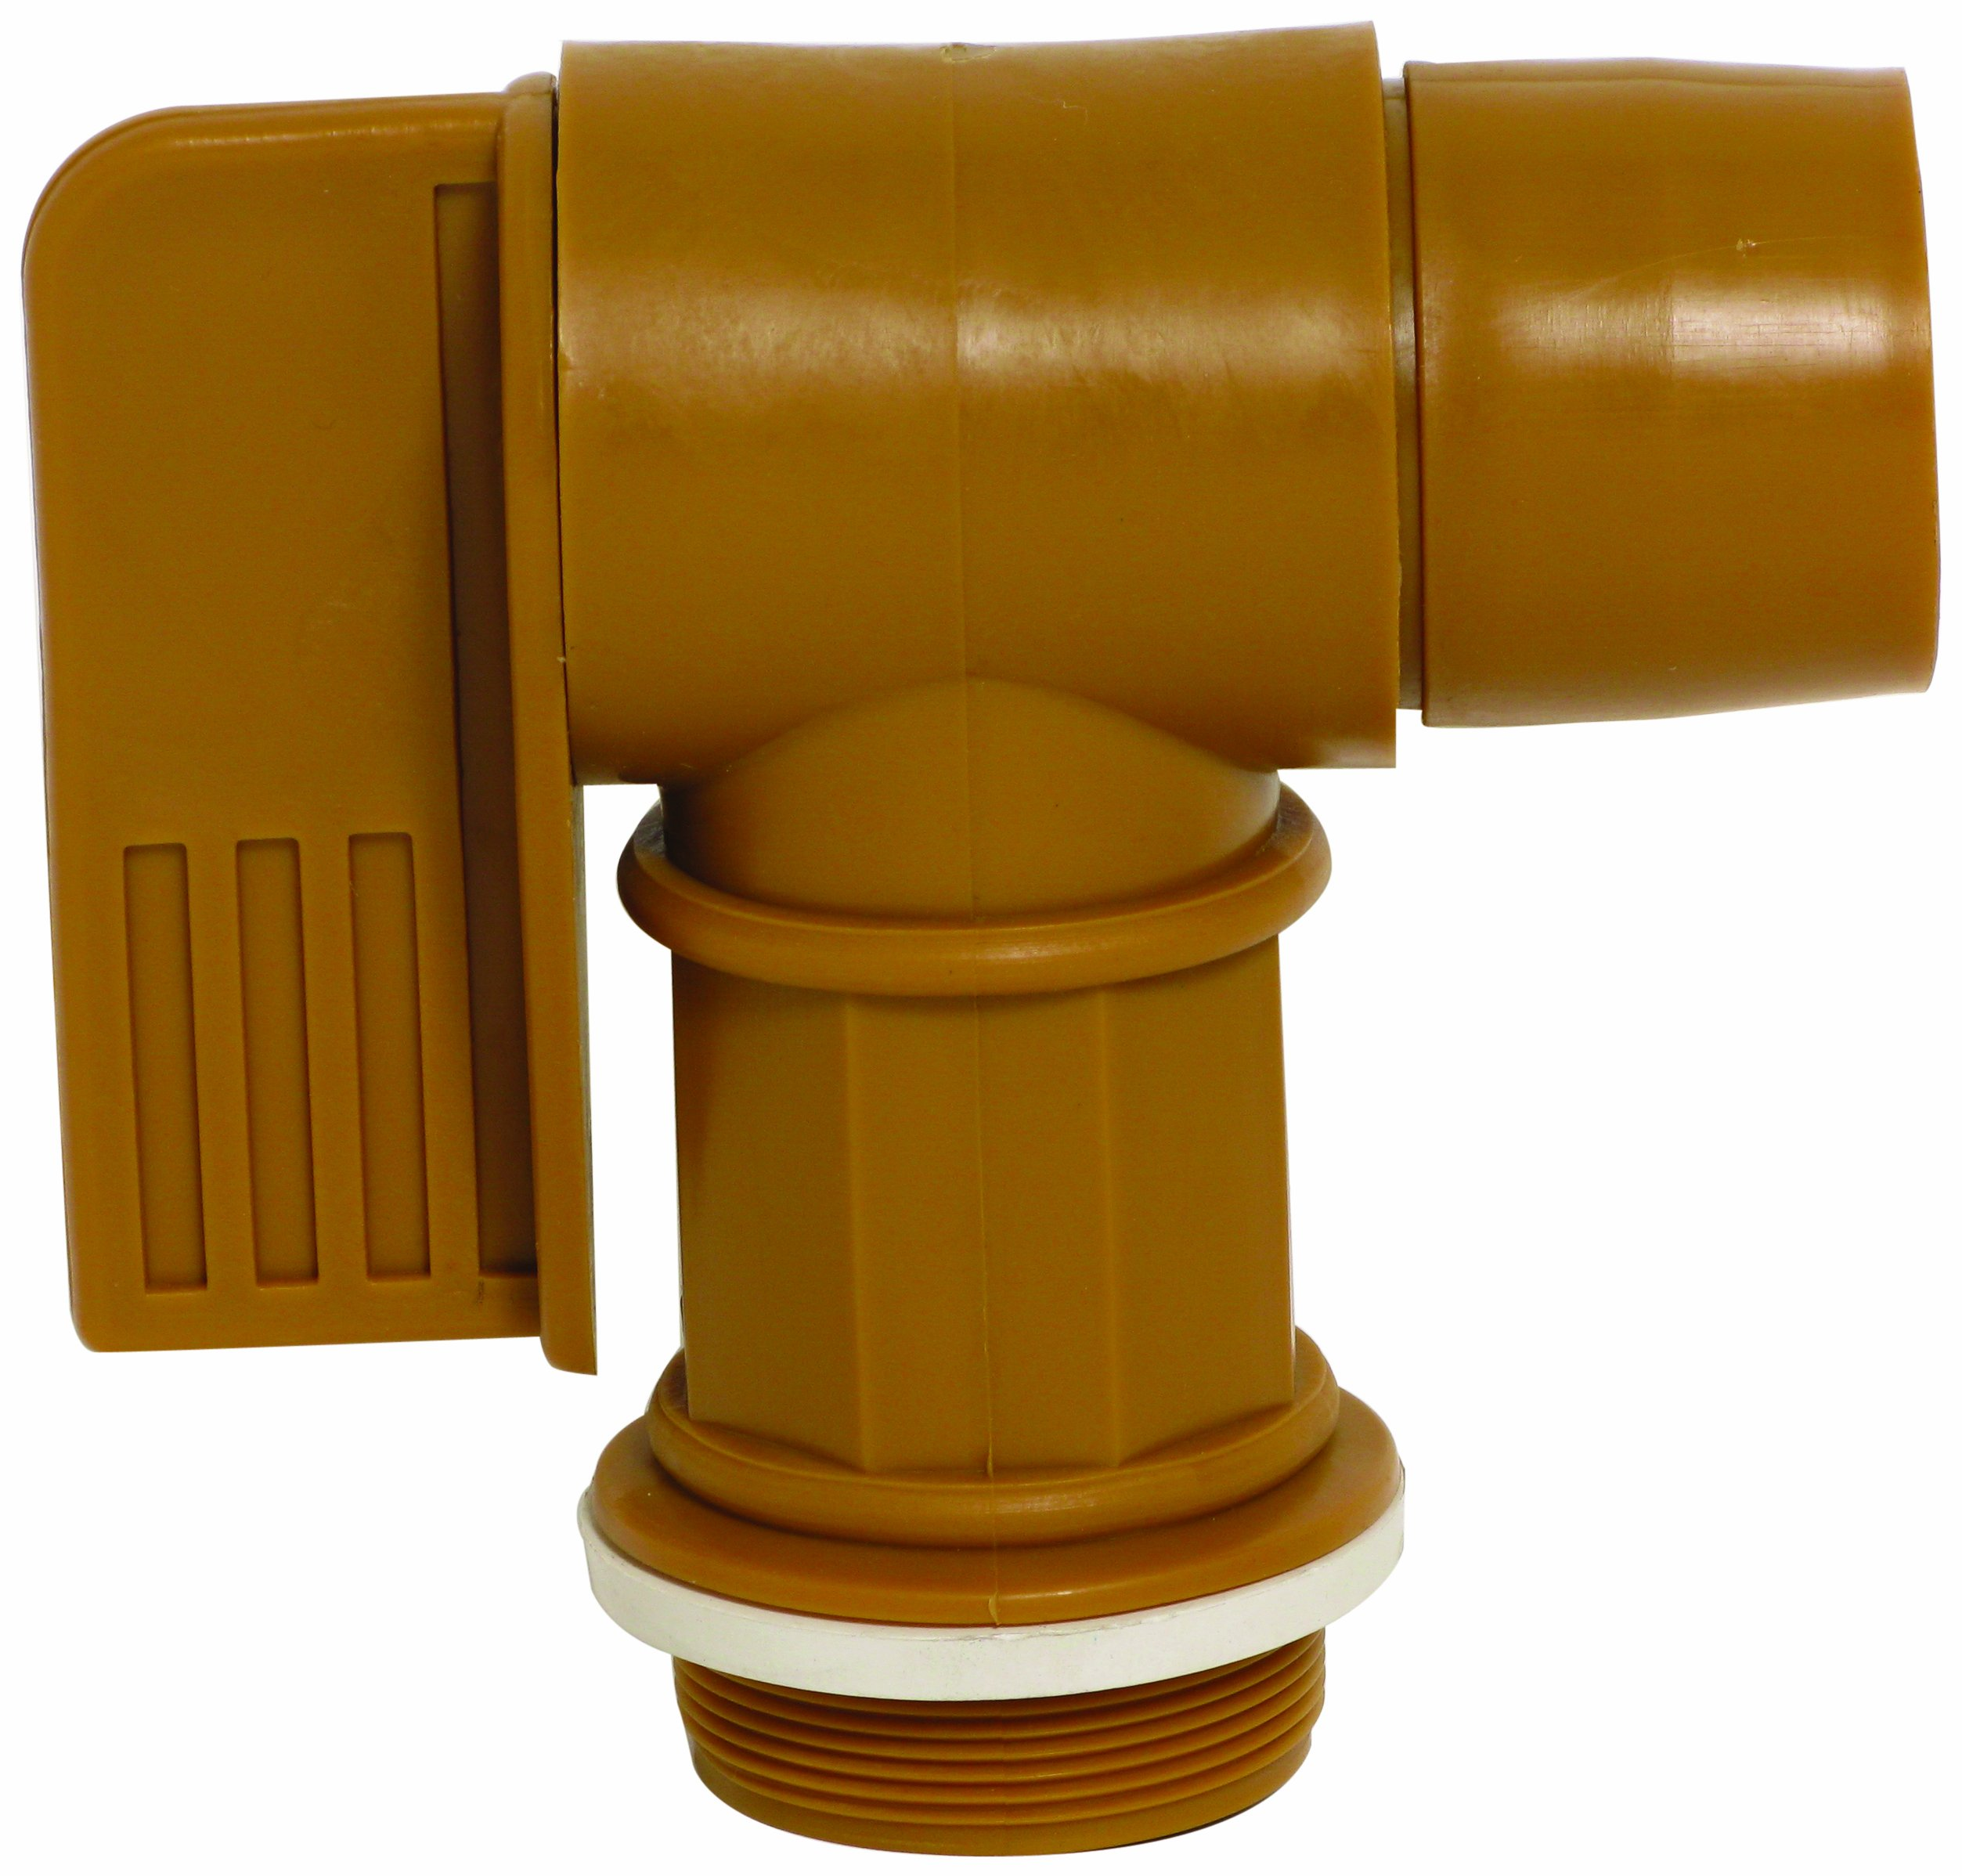 Wesco 272176 Polyethylene Drum Faucet with EPDM Gasket, 2'' NPT Connection